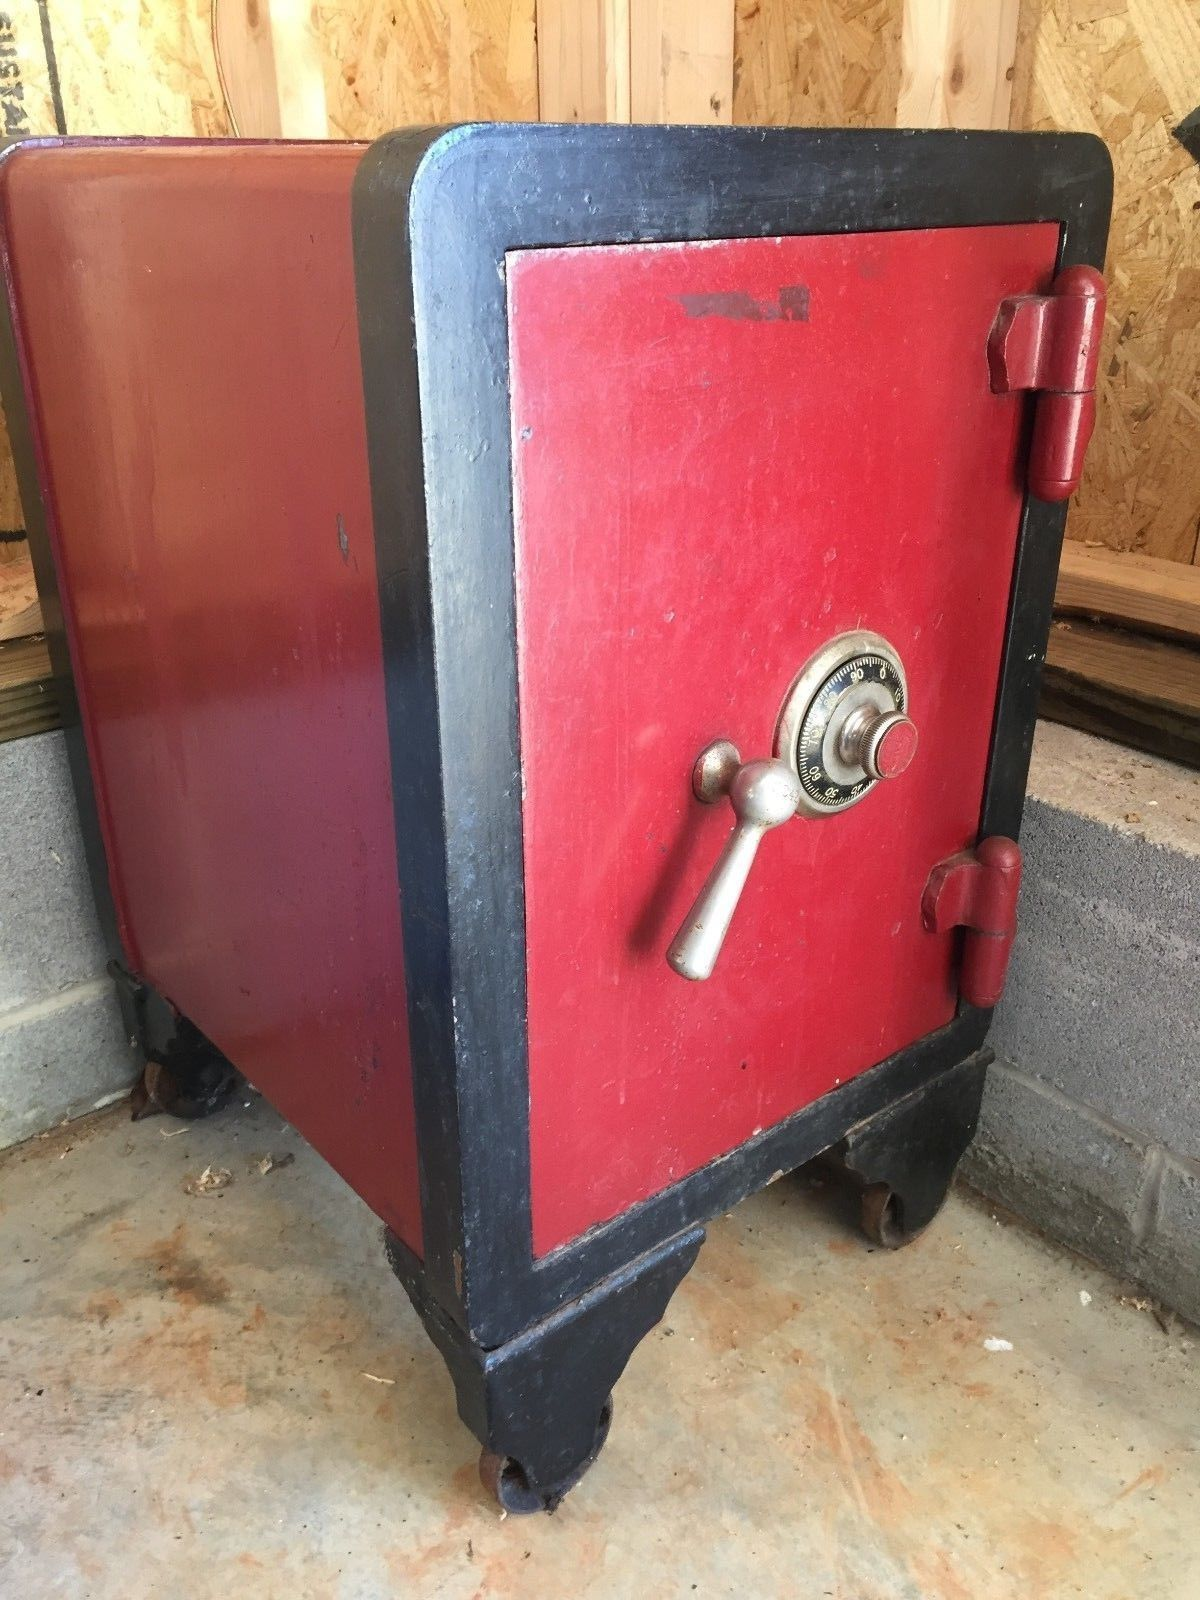 Antique Combination Floor Safe from CARY SAFE CO of